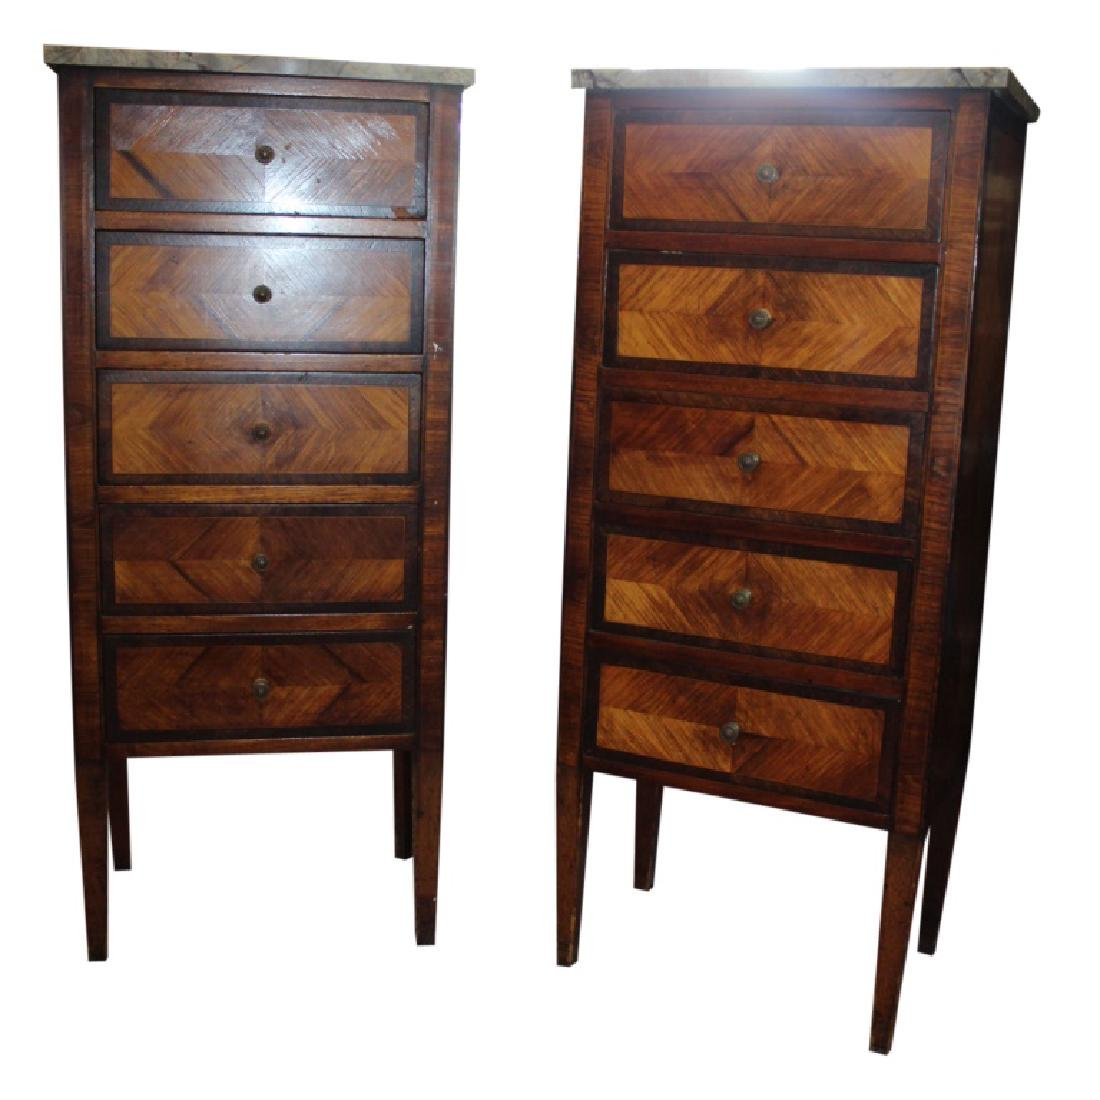 Pair of Marble Top Lingerie Chests